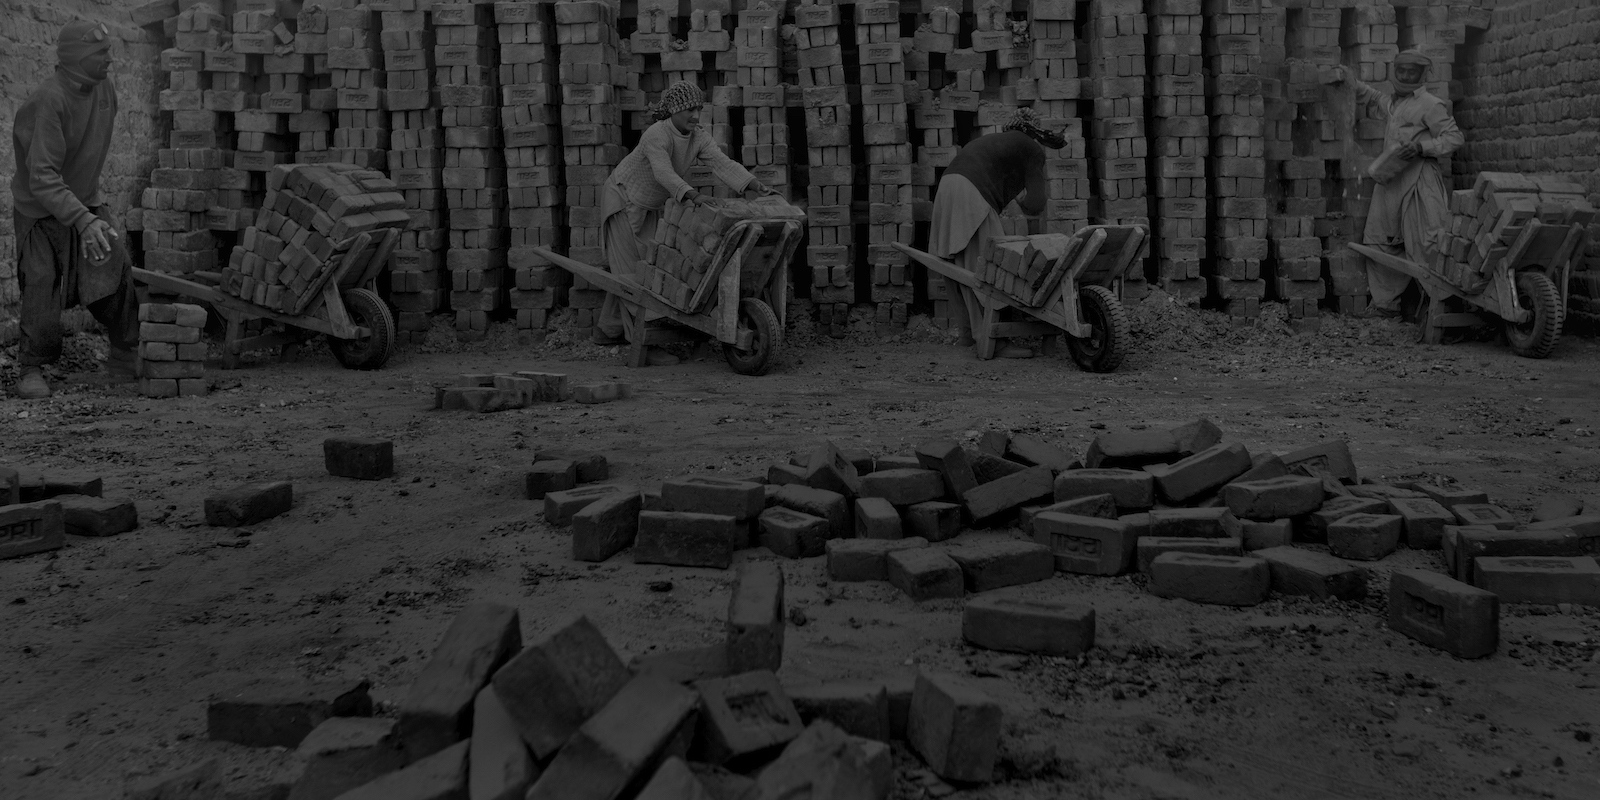 Pakistani labourers move bricks from the inside of a kiln to transport them from a brick factory on the outskirts of Islamabad on January 11, 2012.